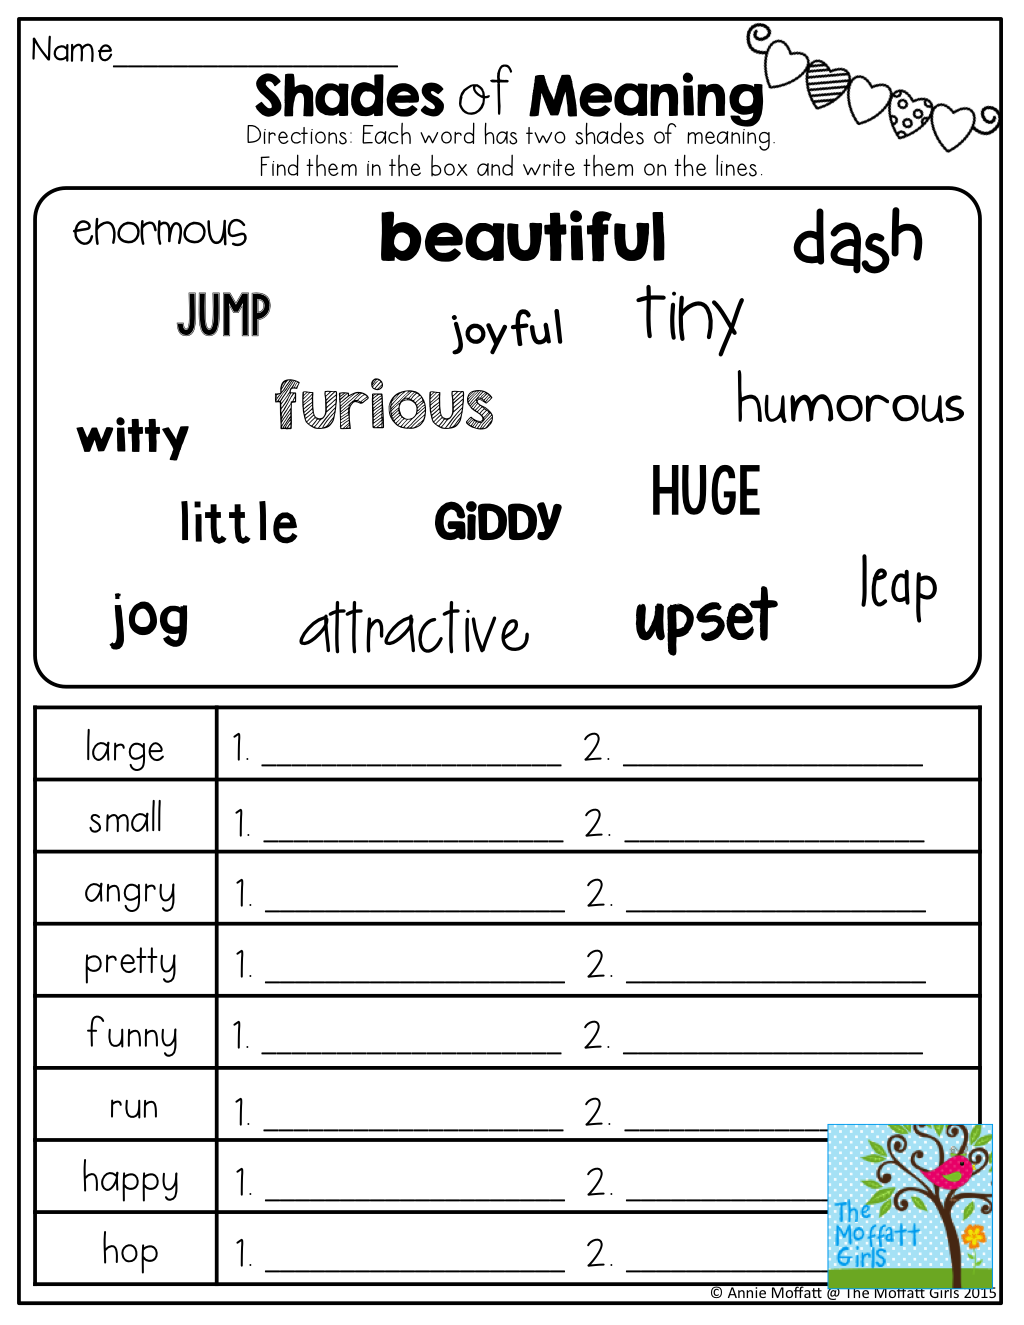 hight resolution of Shades of Meaning! TONS of other great printables!   Shades of meaning